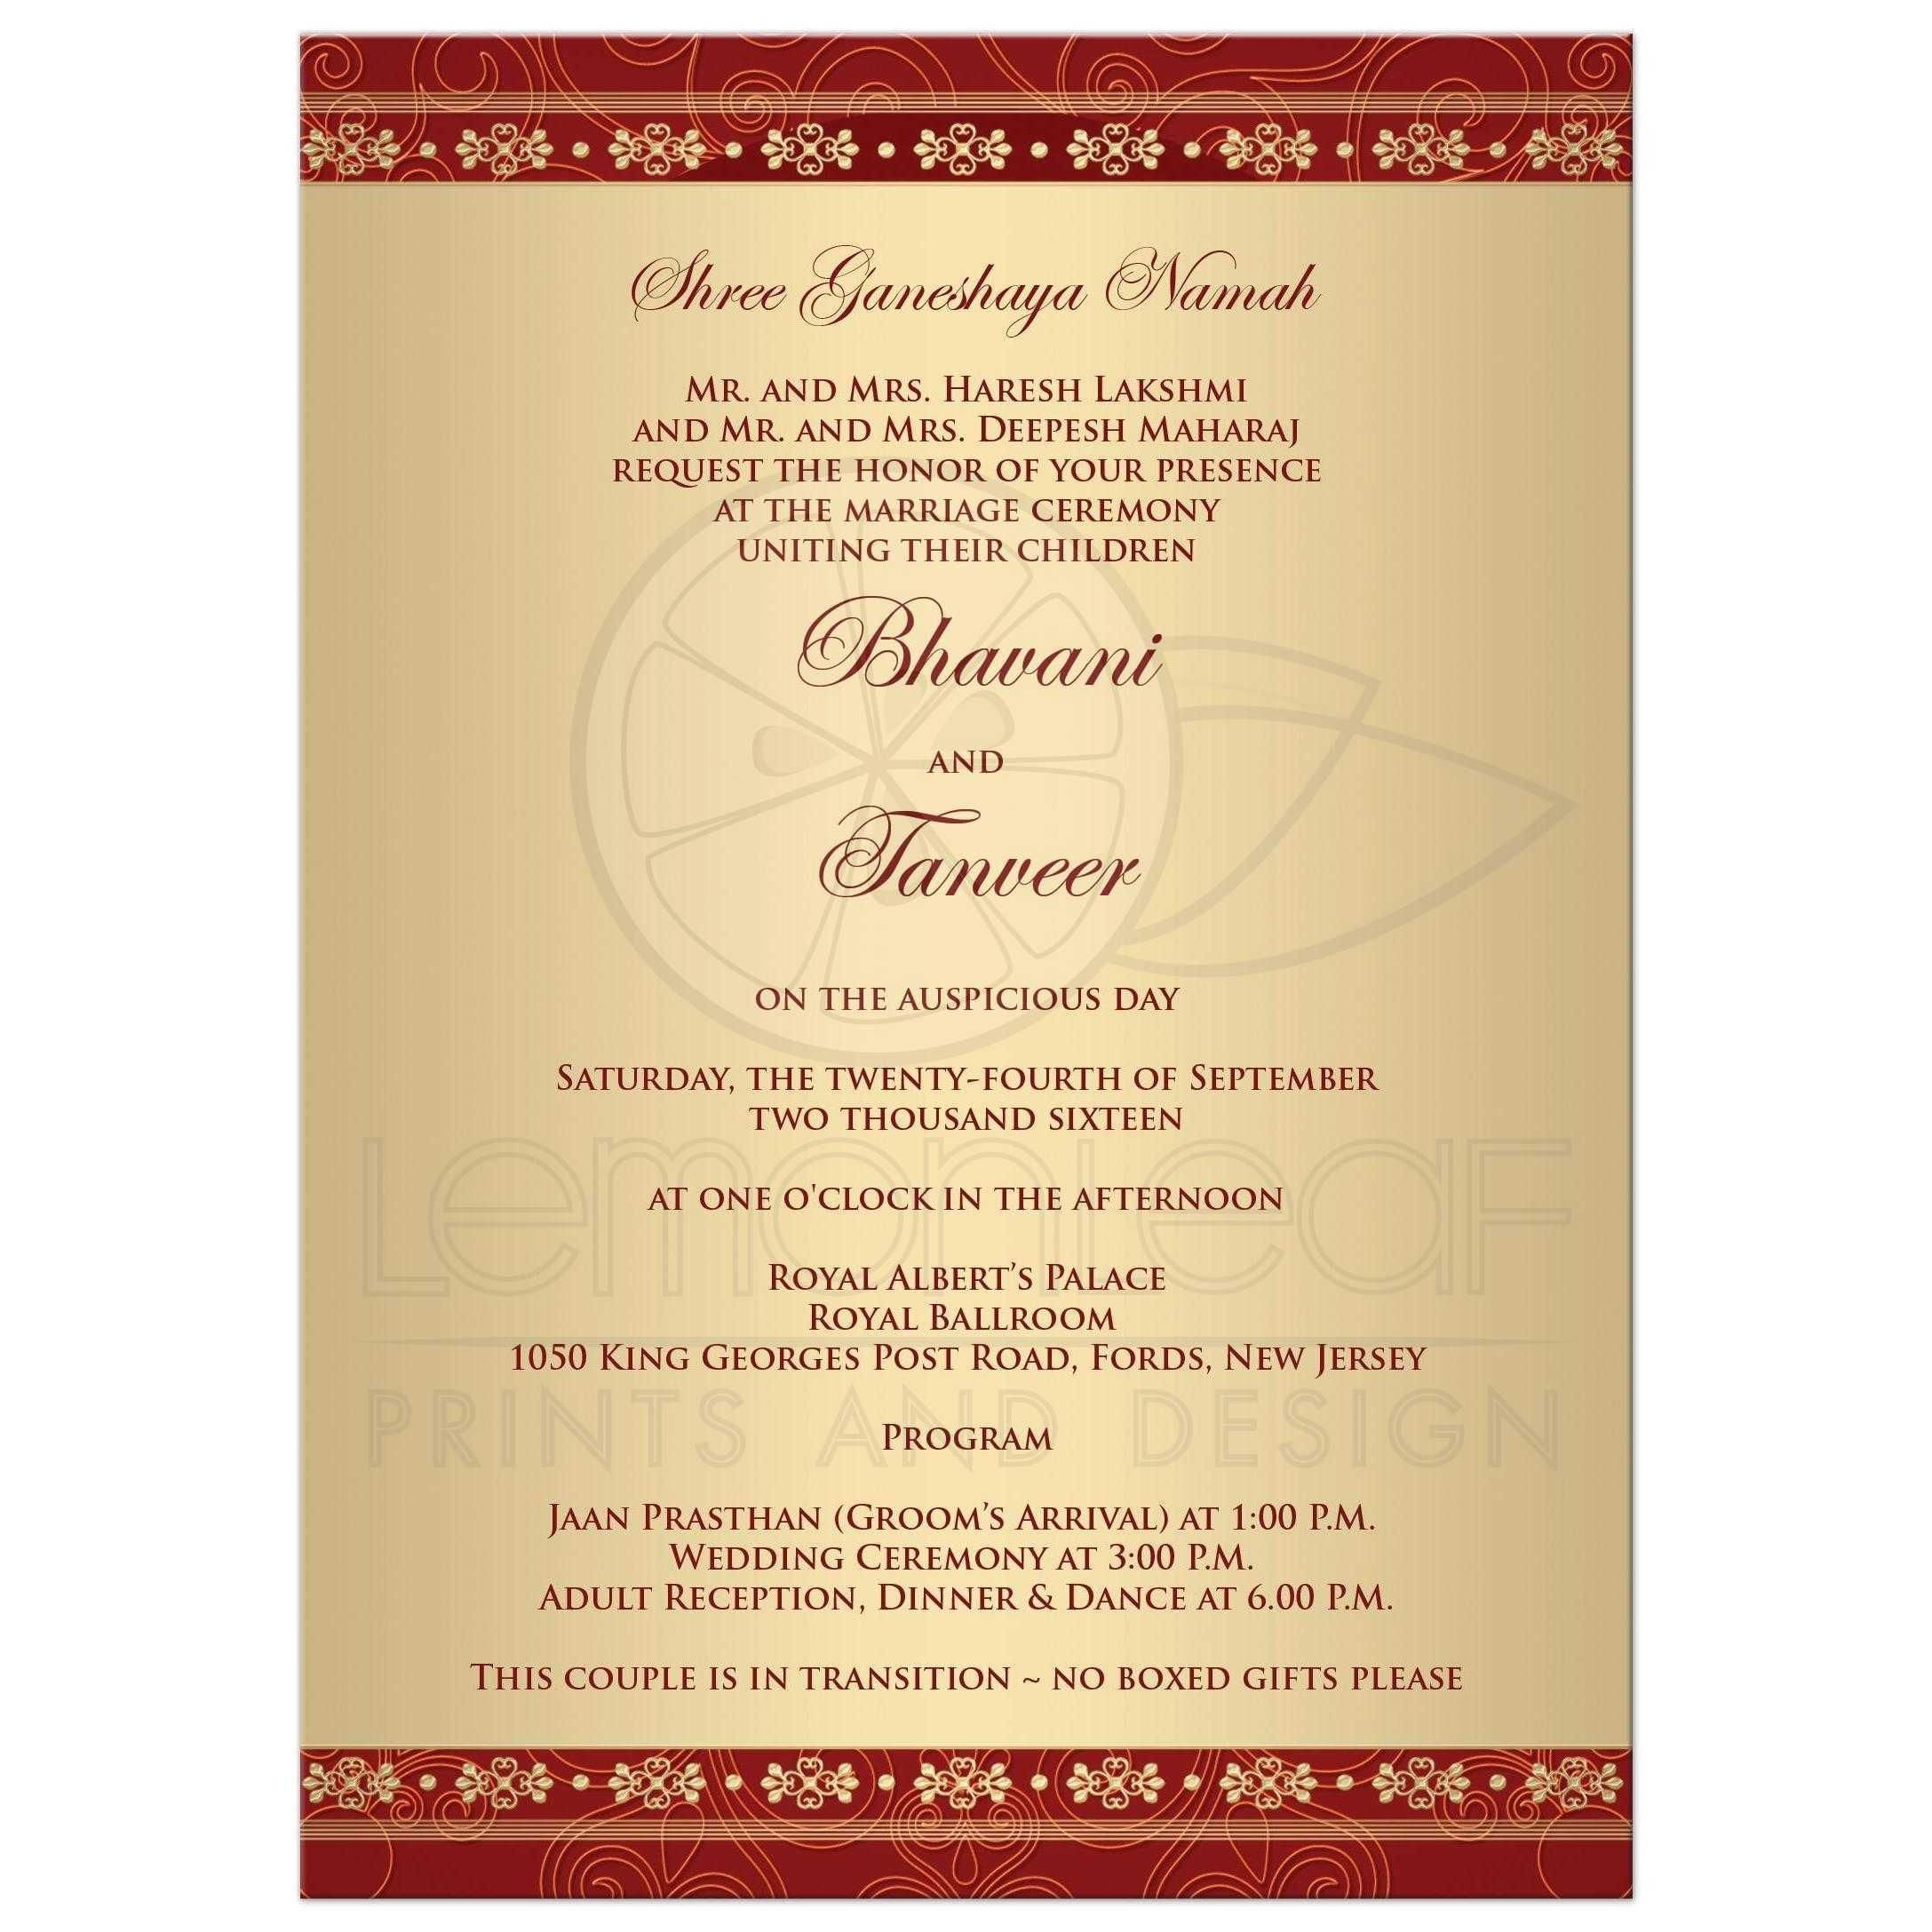 Invitation Vector At Getdrawings Com Free For Personal Use